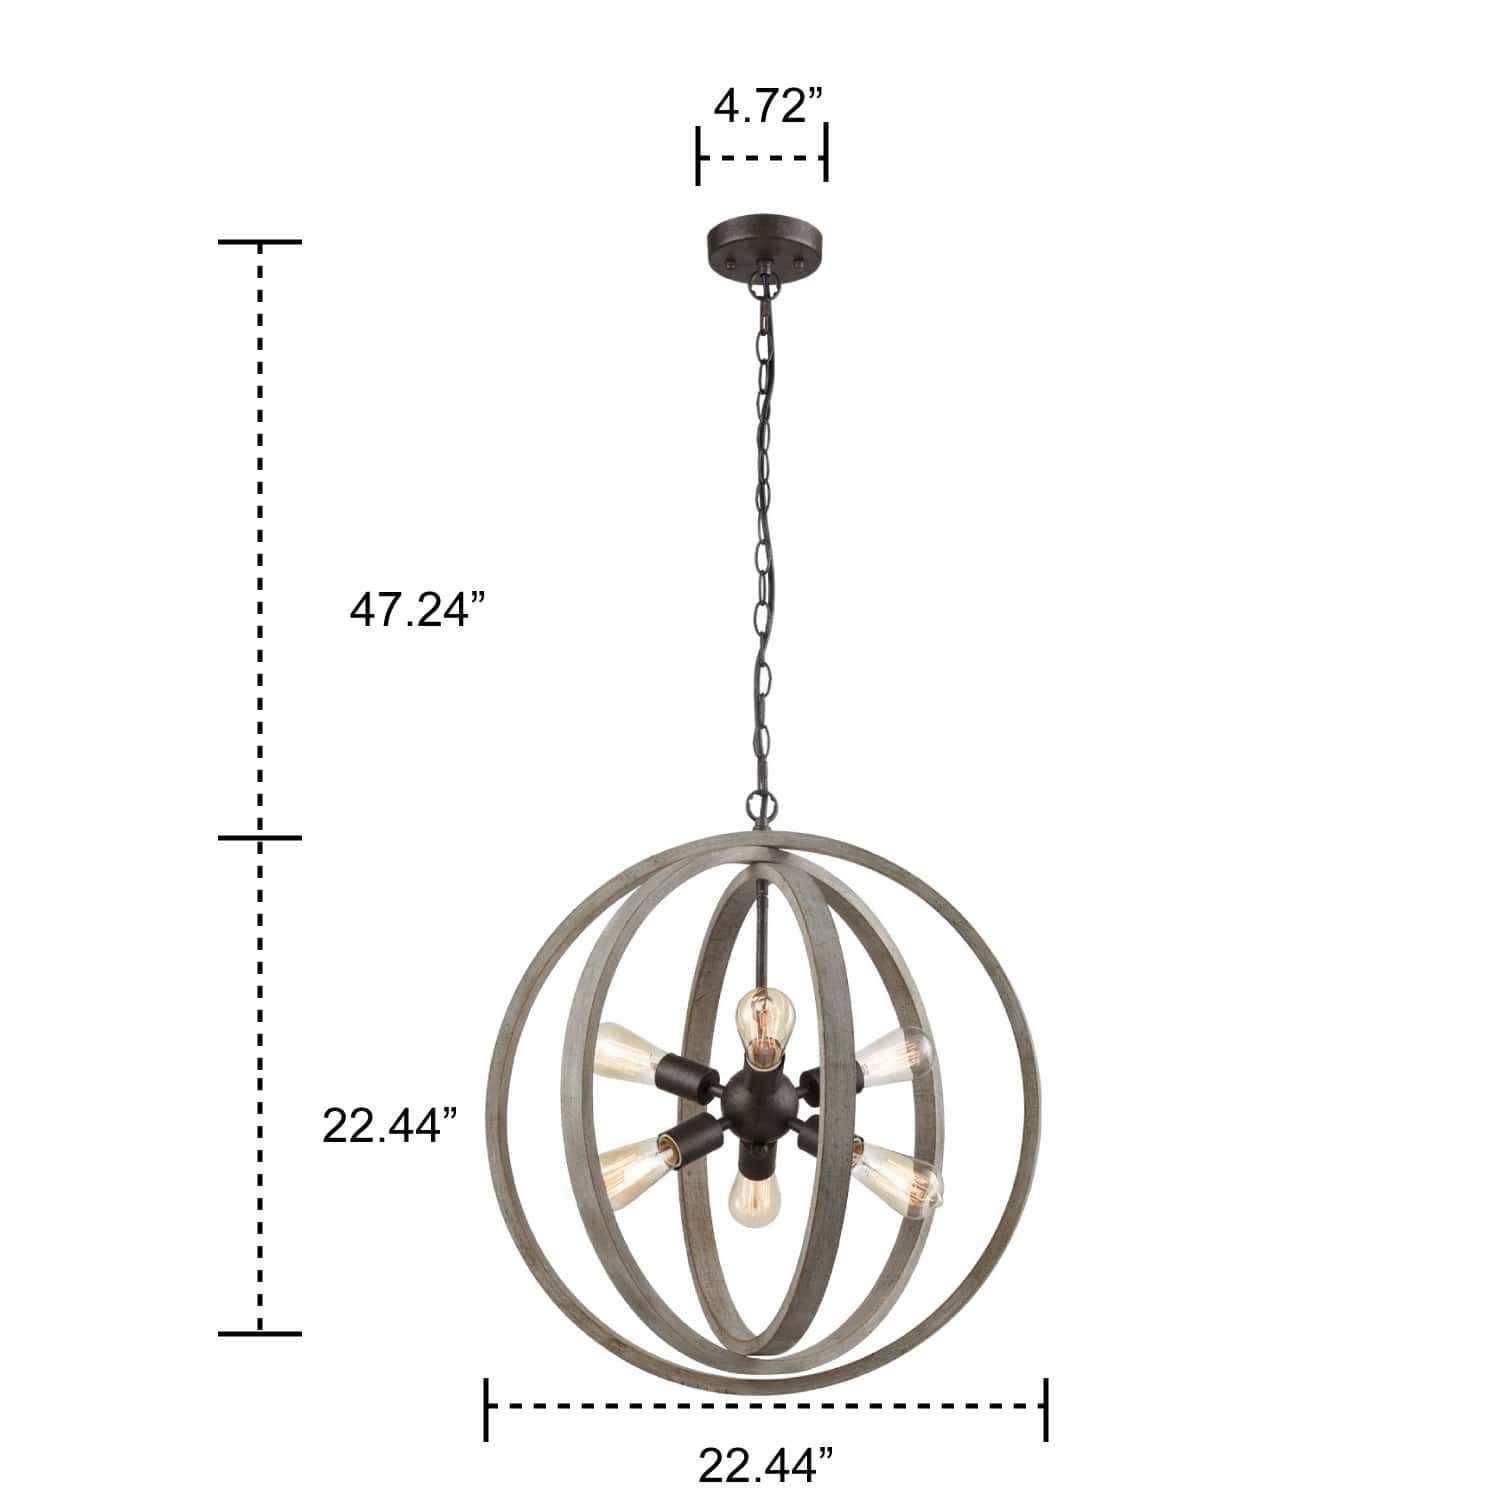 Rustic Pendant Chandelier with Globe Wood Shade - 6 Light